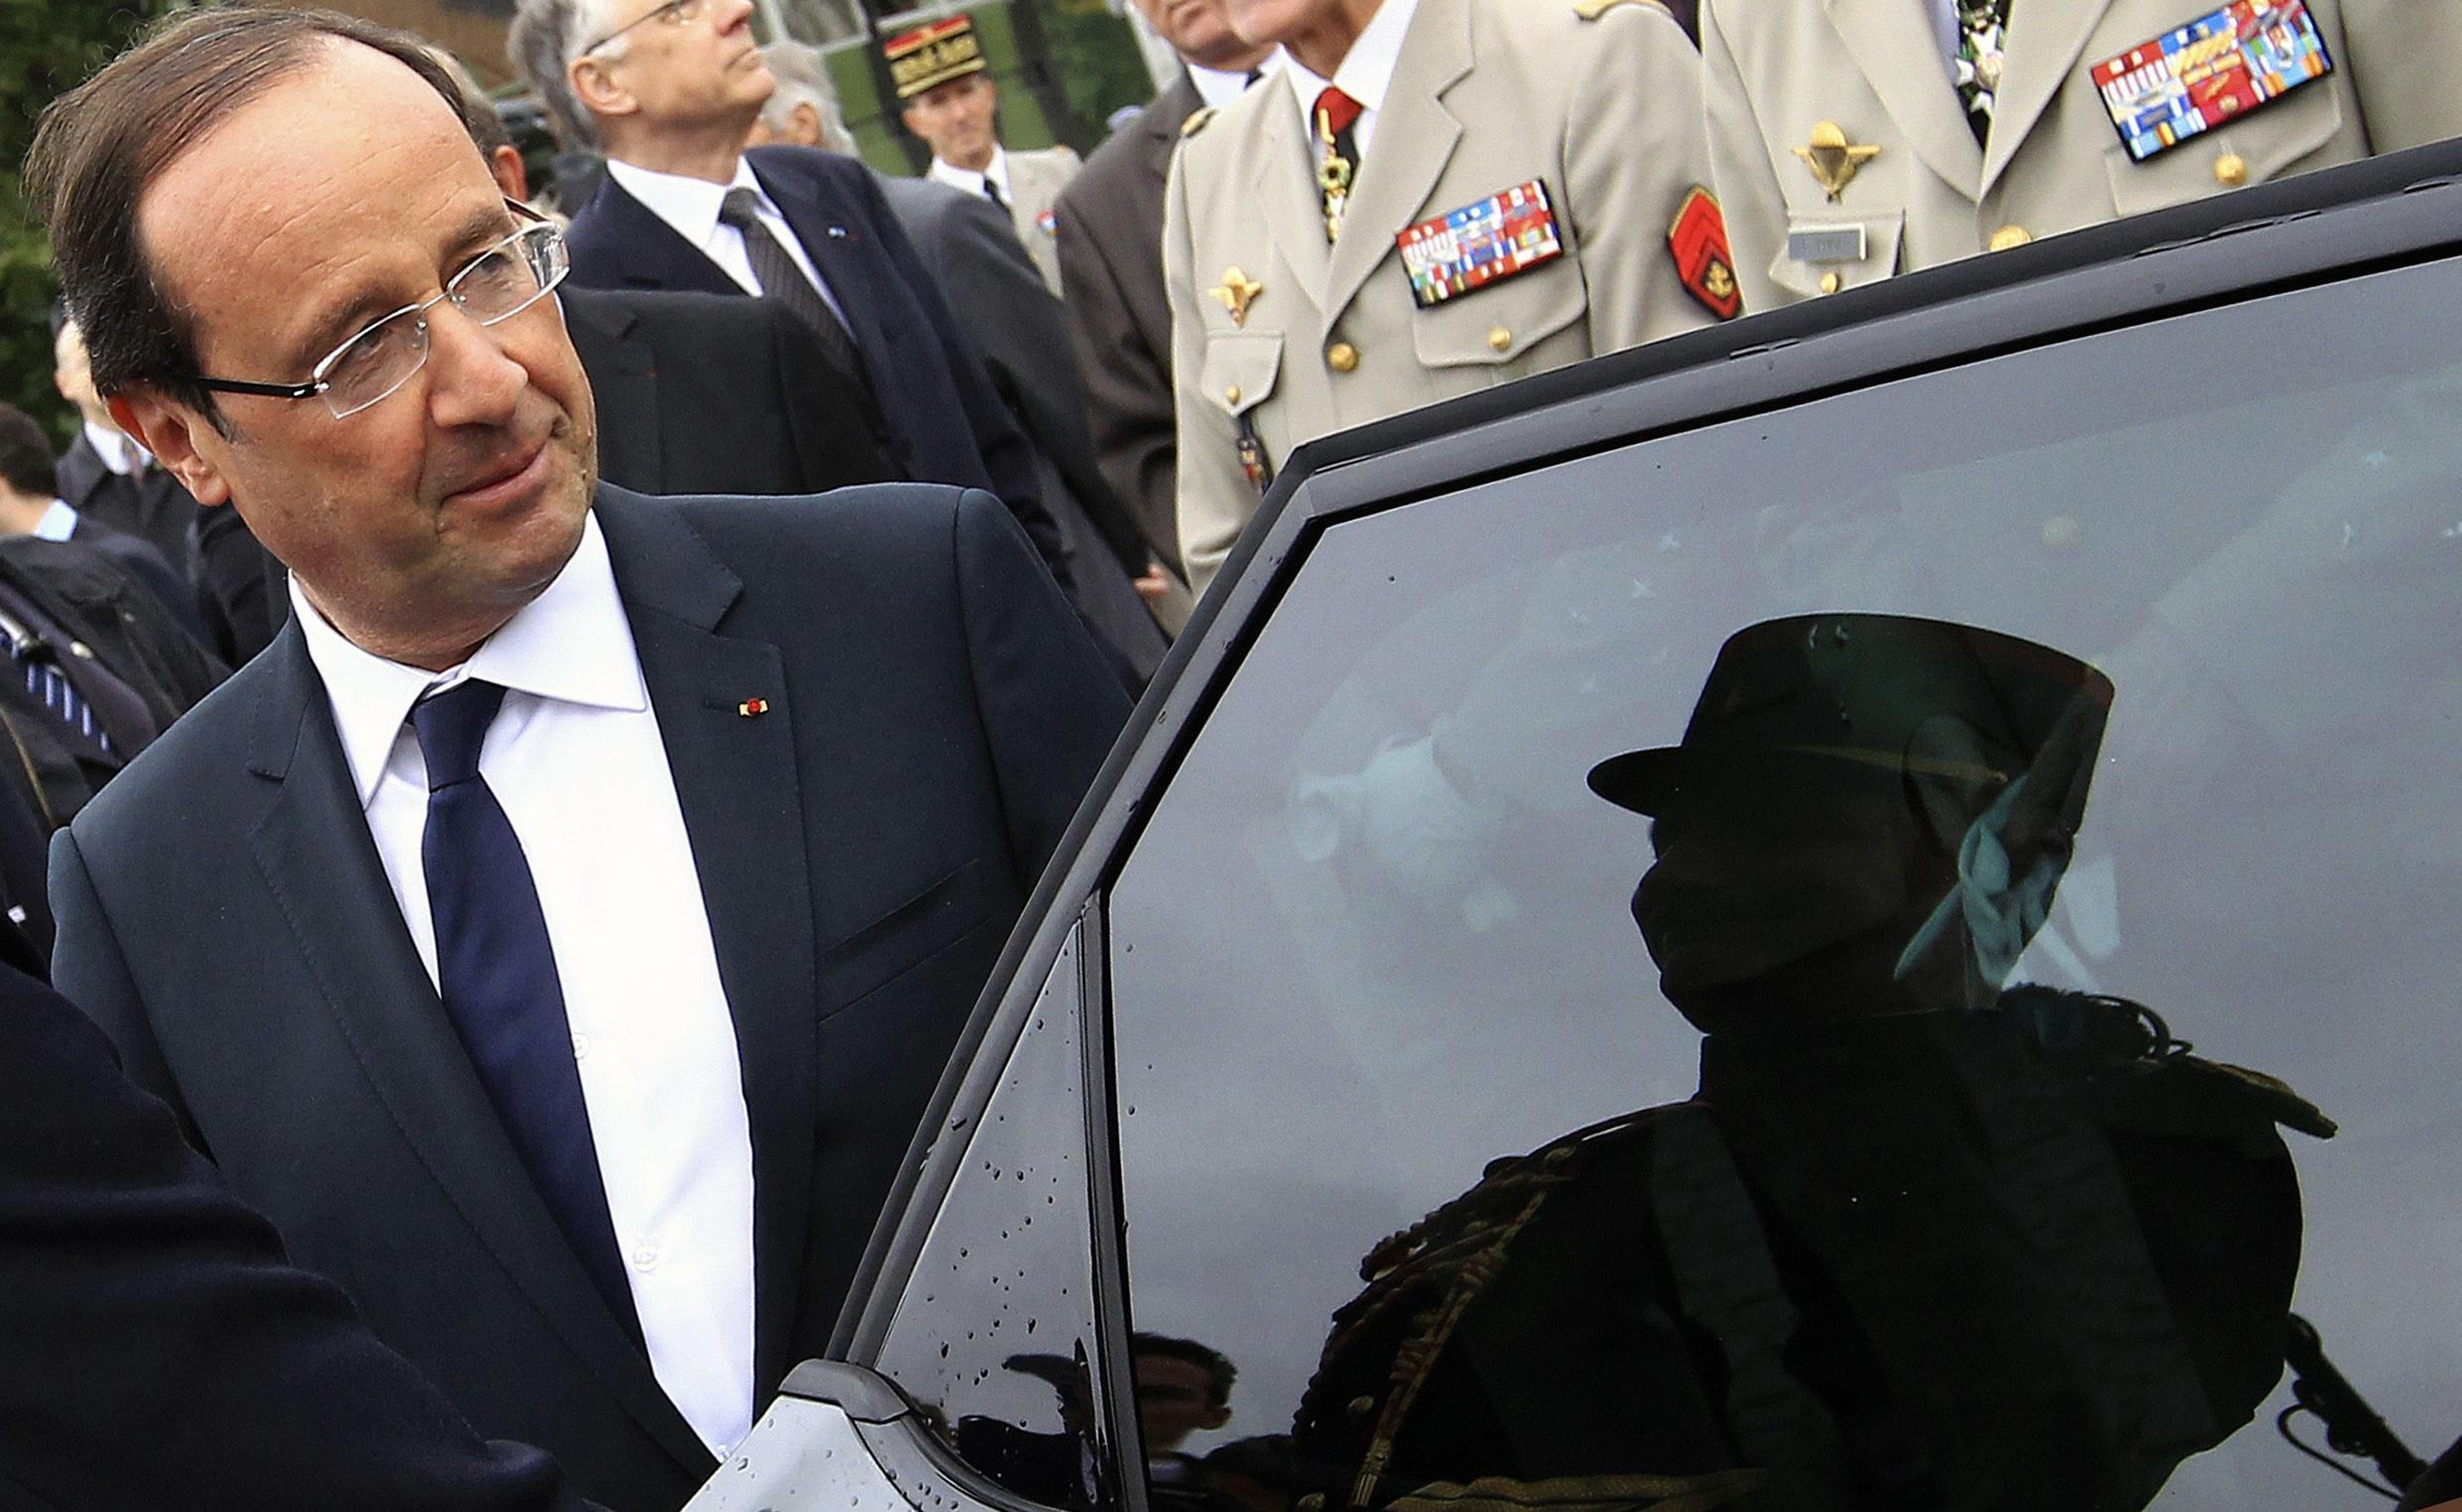 Former socialist president François Hollande identified with De Gaulle's strong defence of republican values